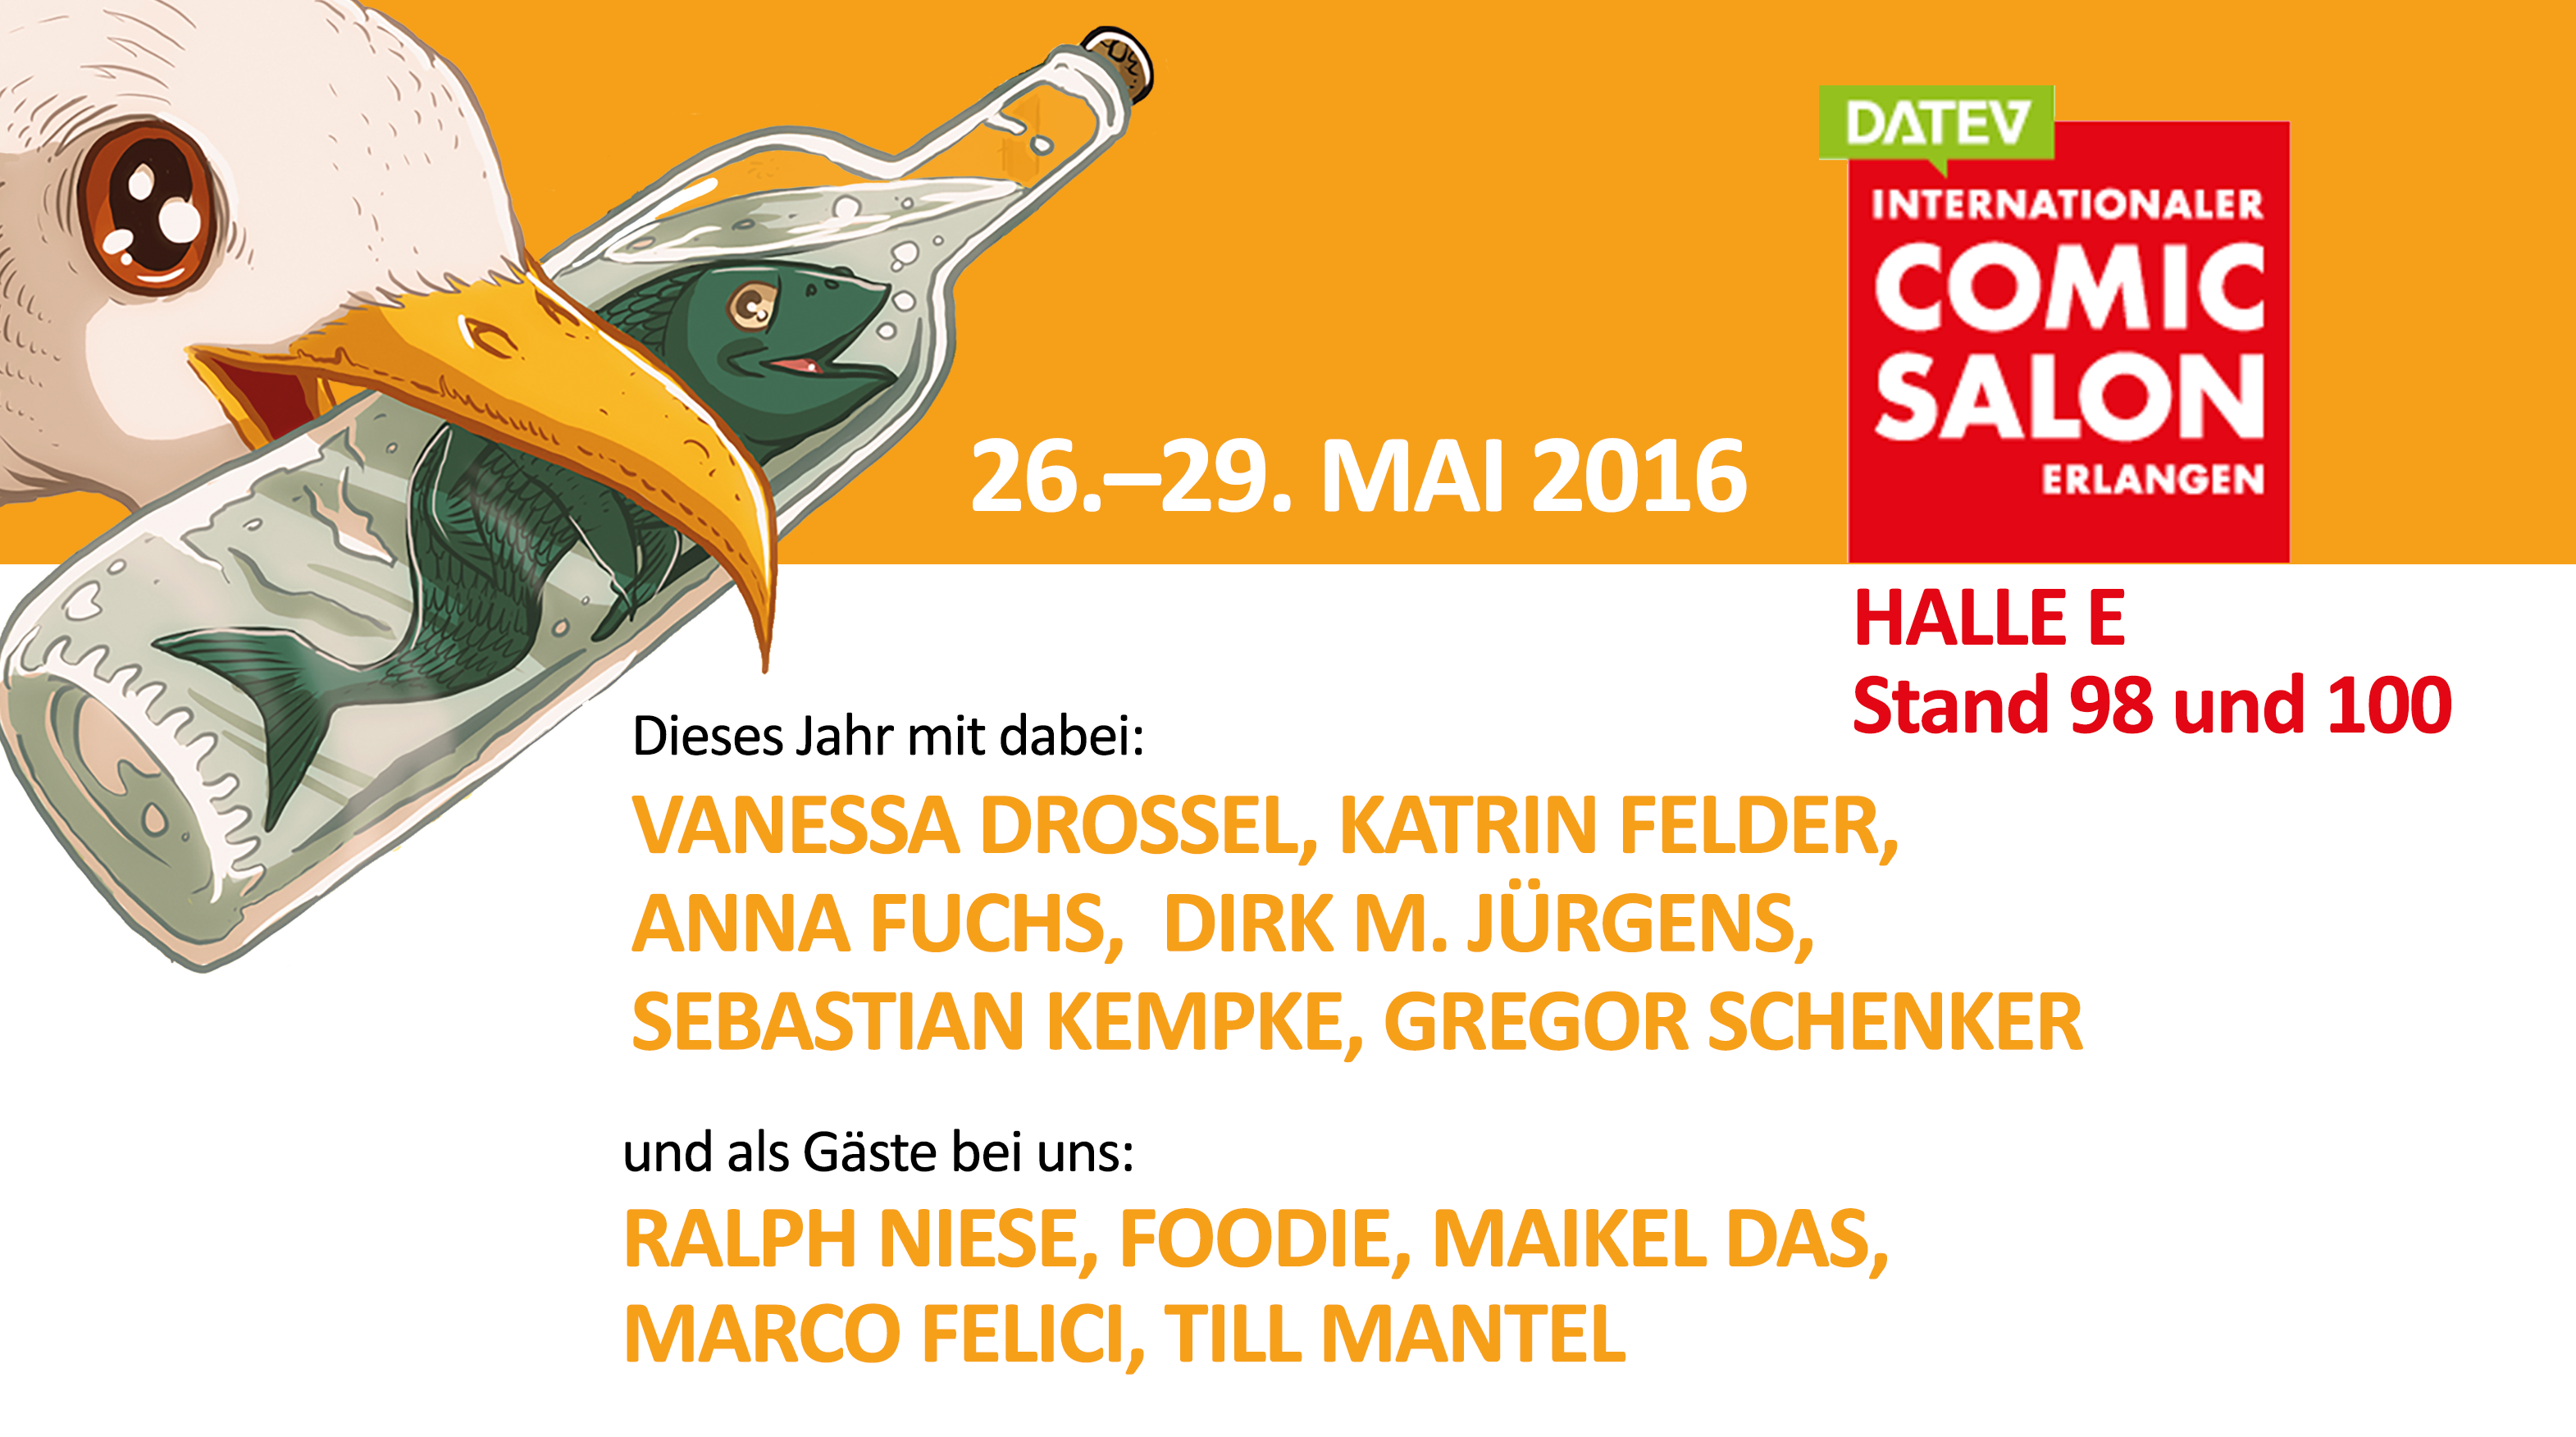 Internationaler Comic Salon in Erlangen (26.–29.05.2016)